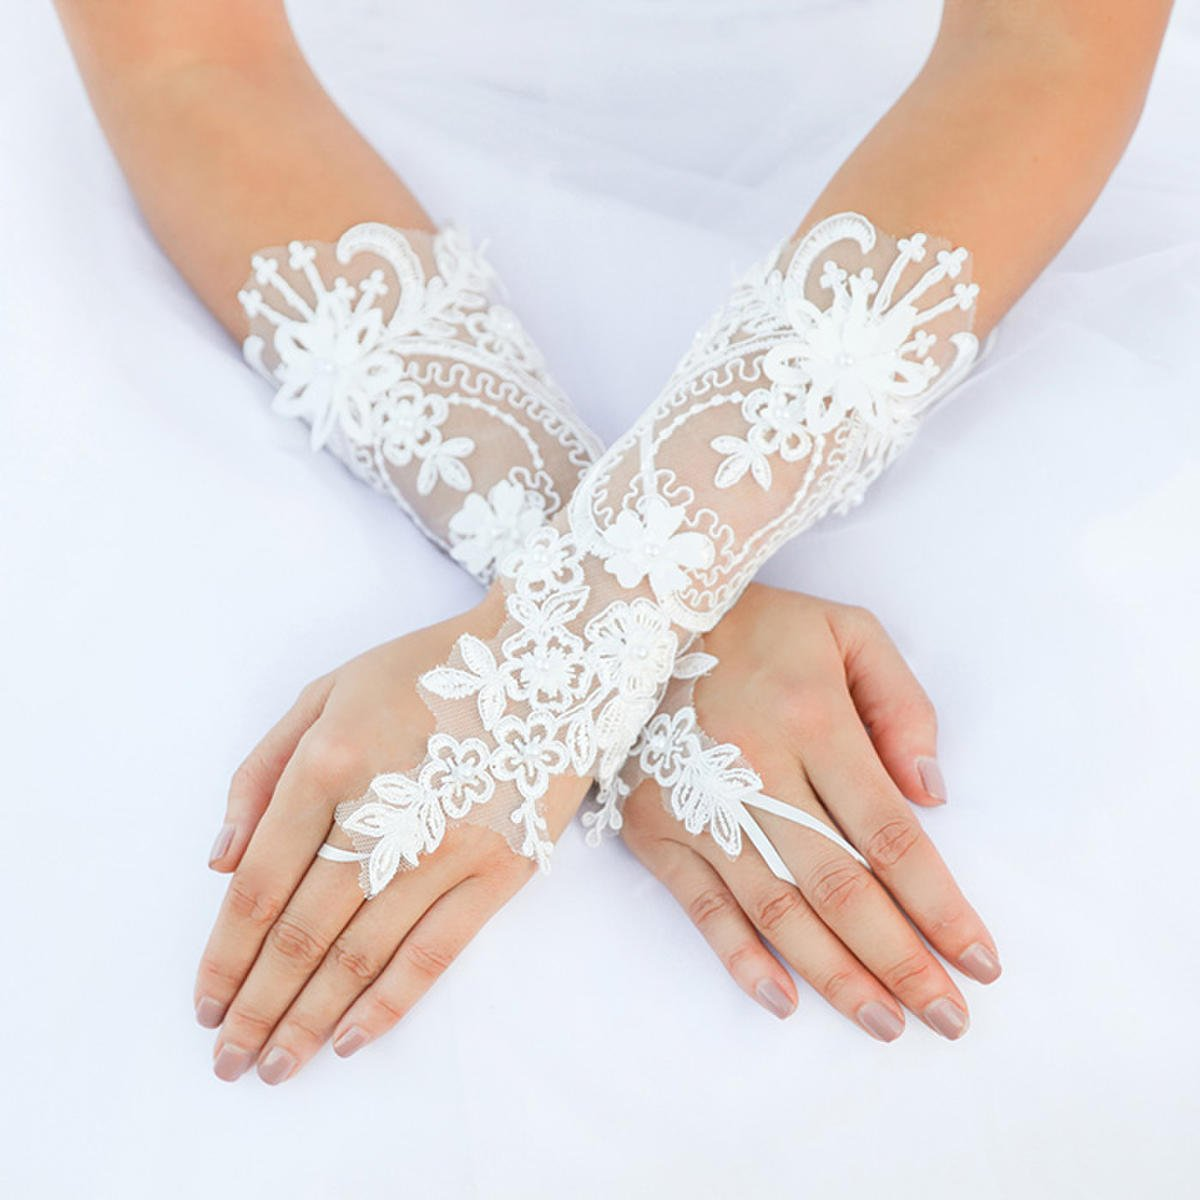 WONA TRADING INC - Floral Lace Fingerless Wedding Glove GL942